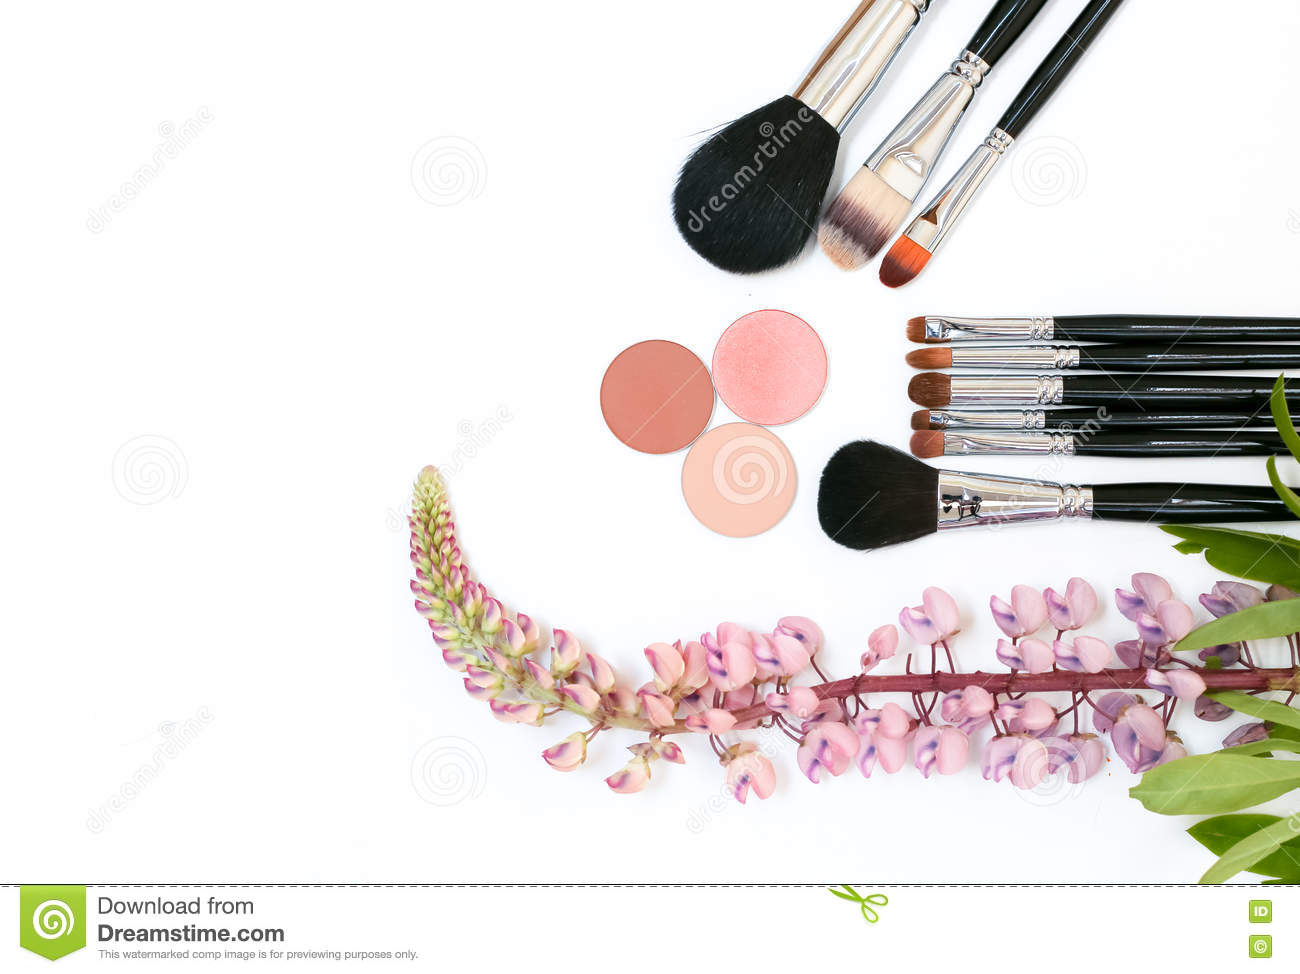 Best Natural Brushes For Makeup